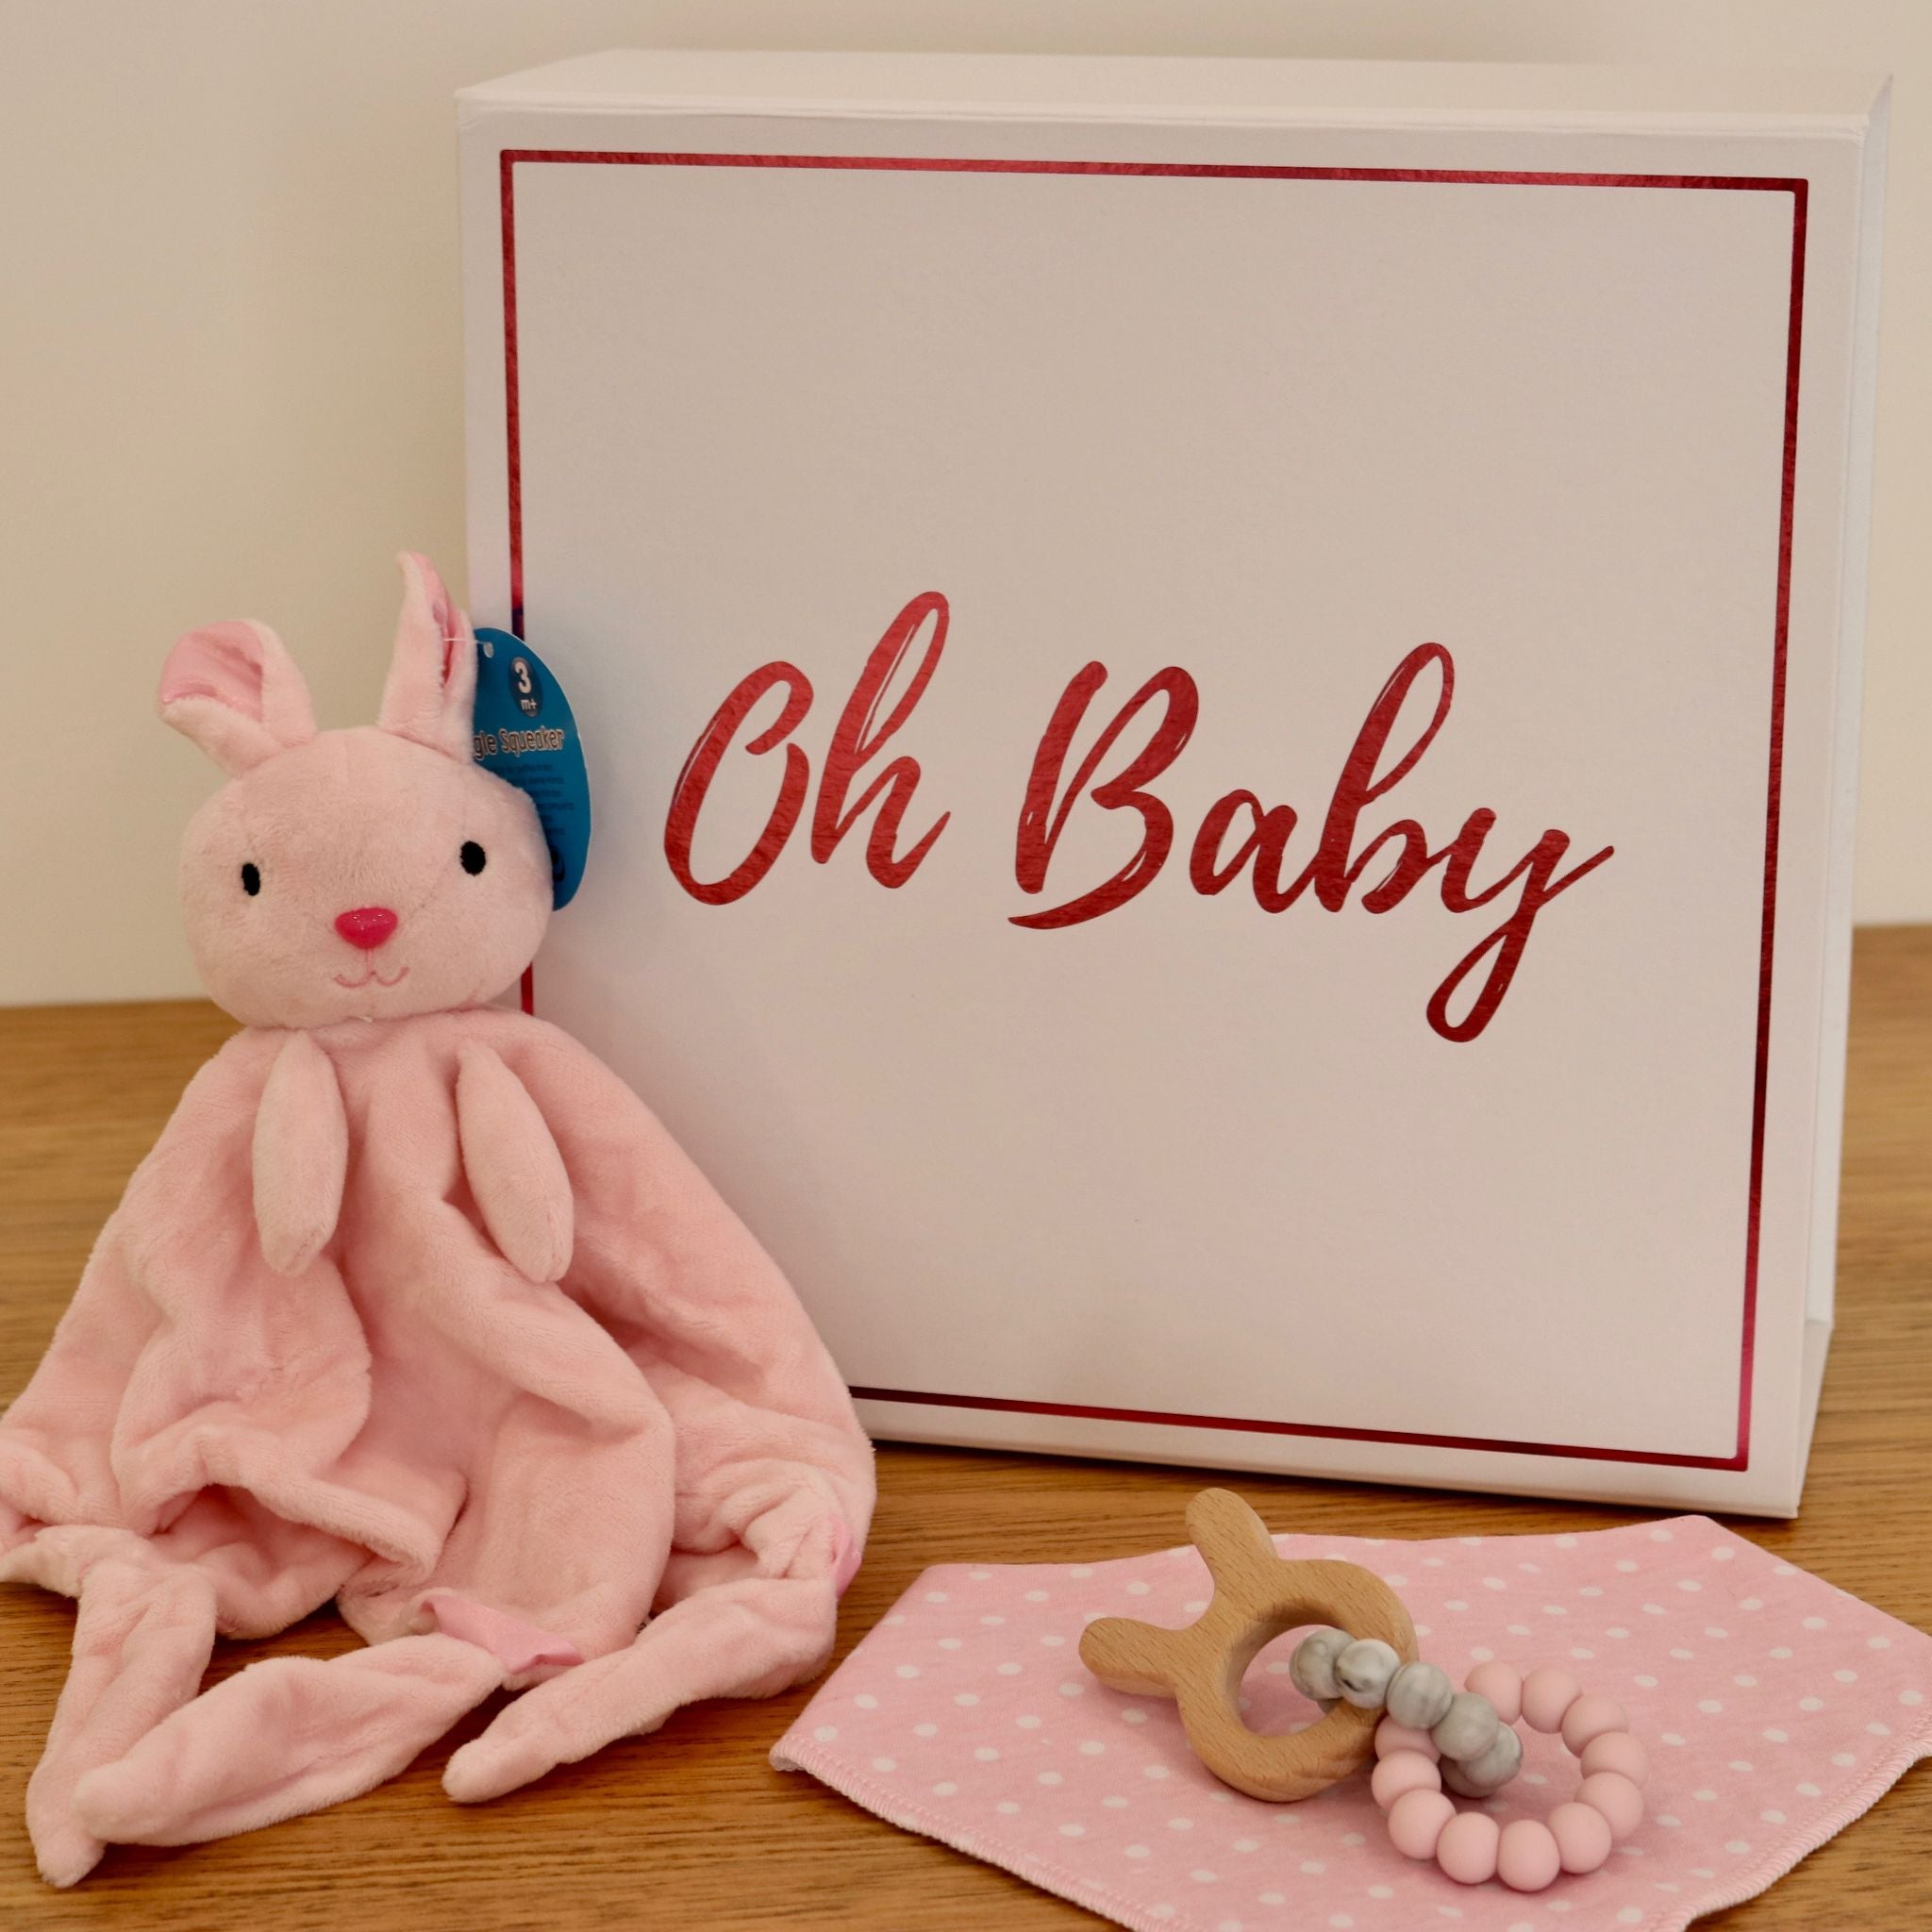 Oh Baby Gift Set